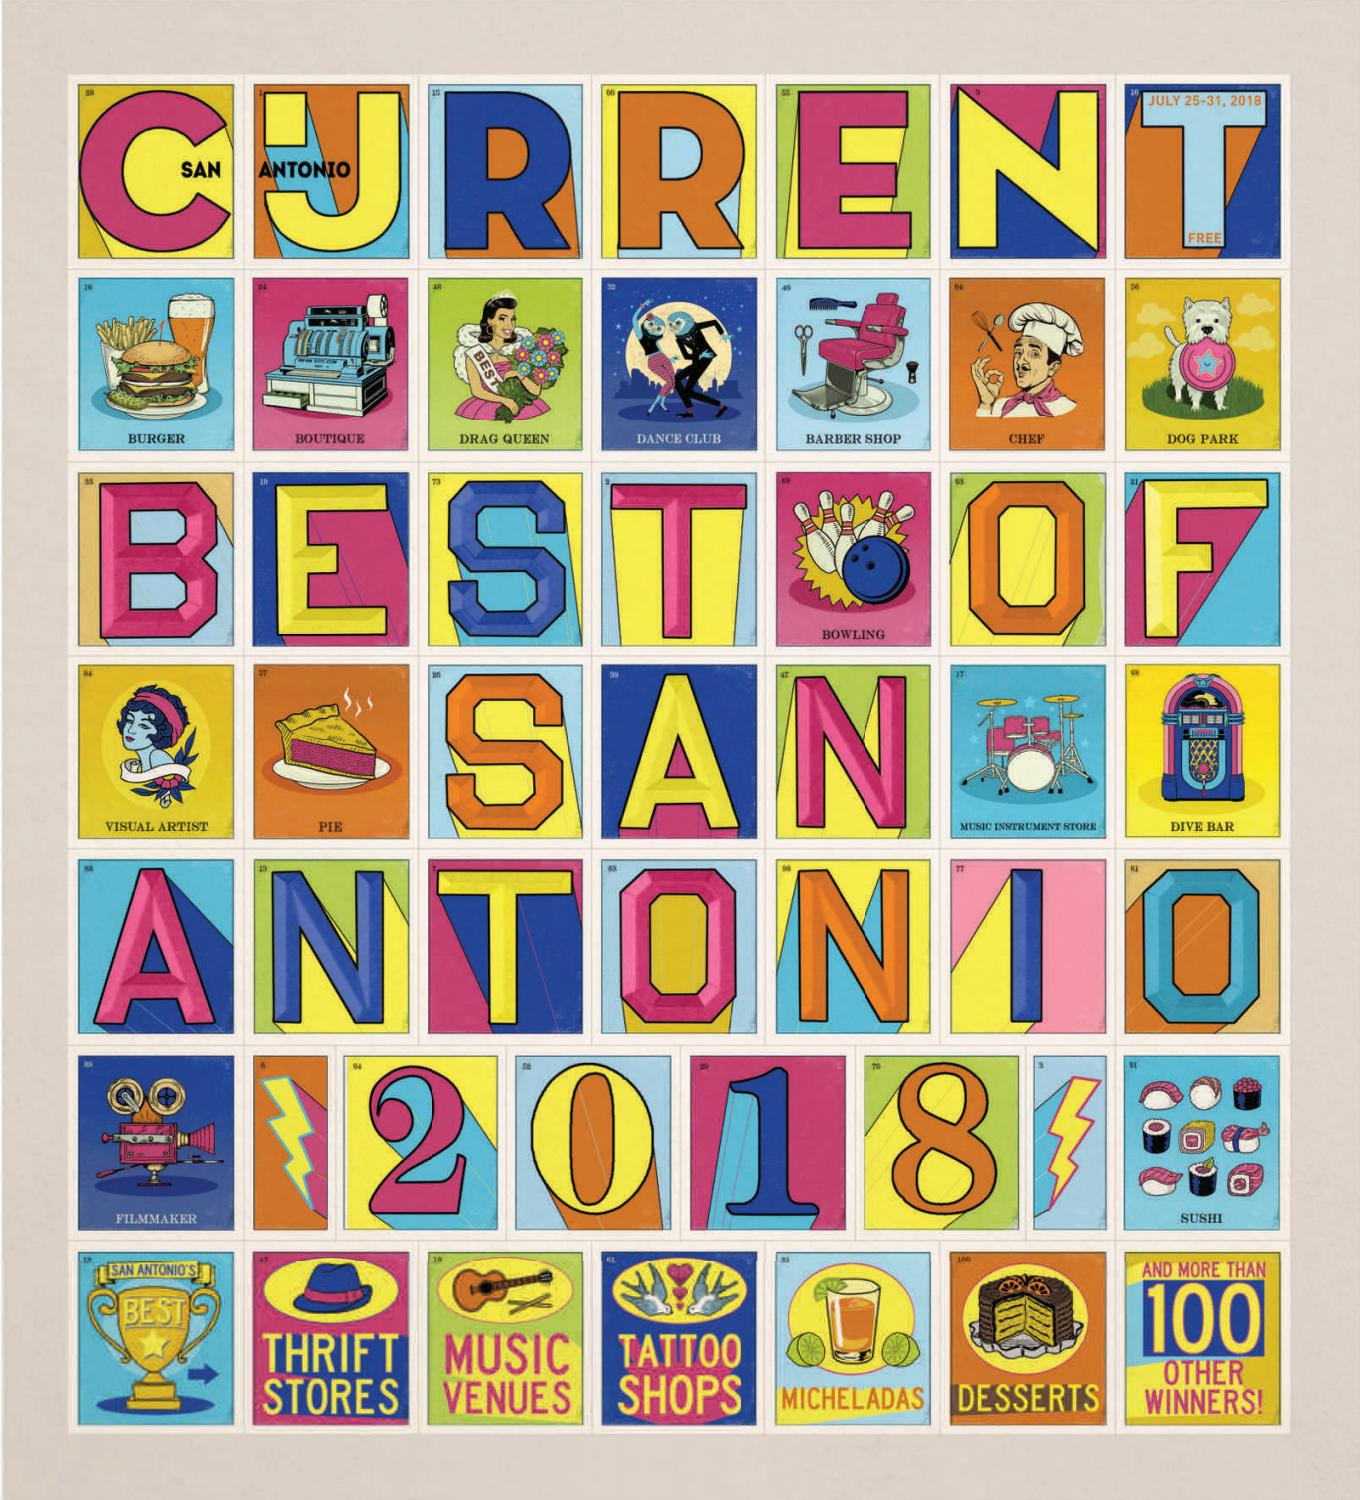 Best of San Antonio 2018 by Euclid Media Group - issuu